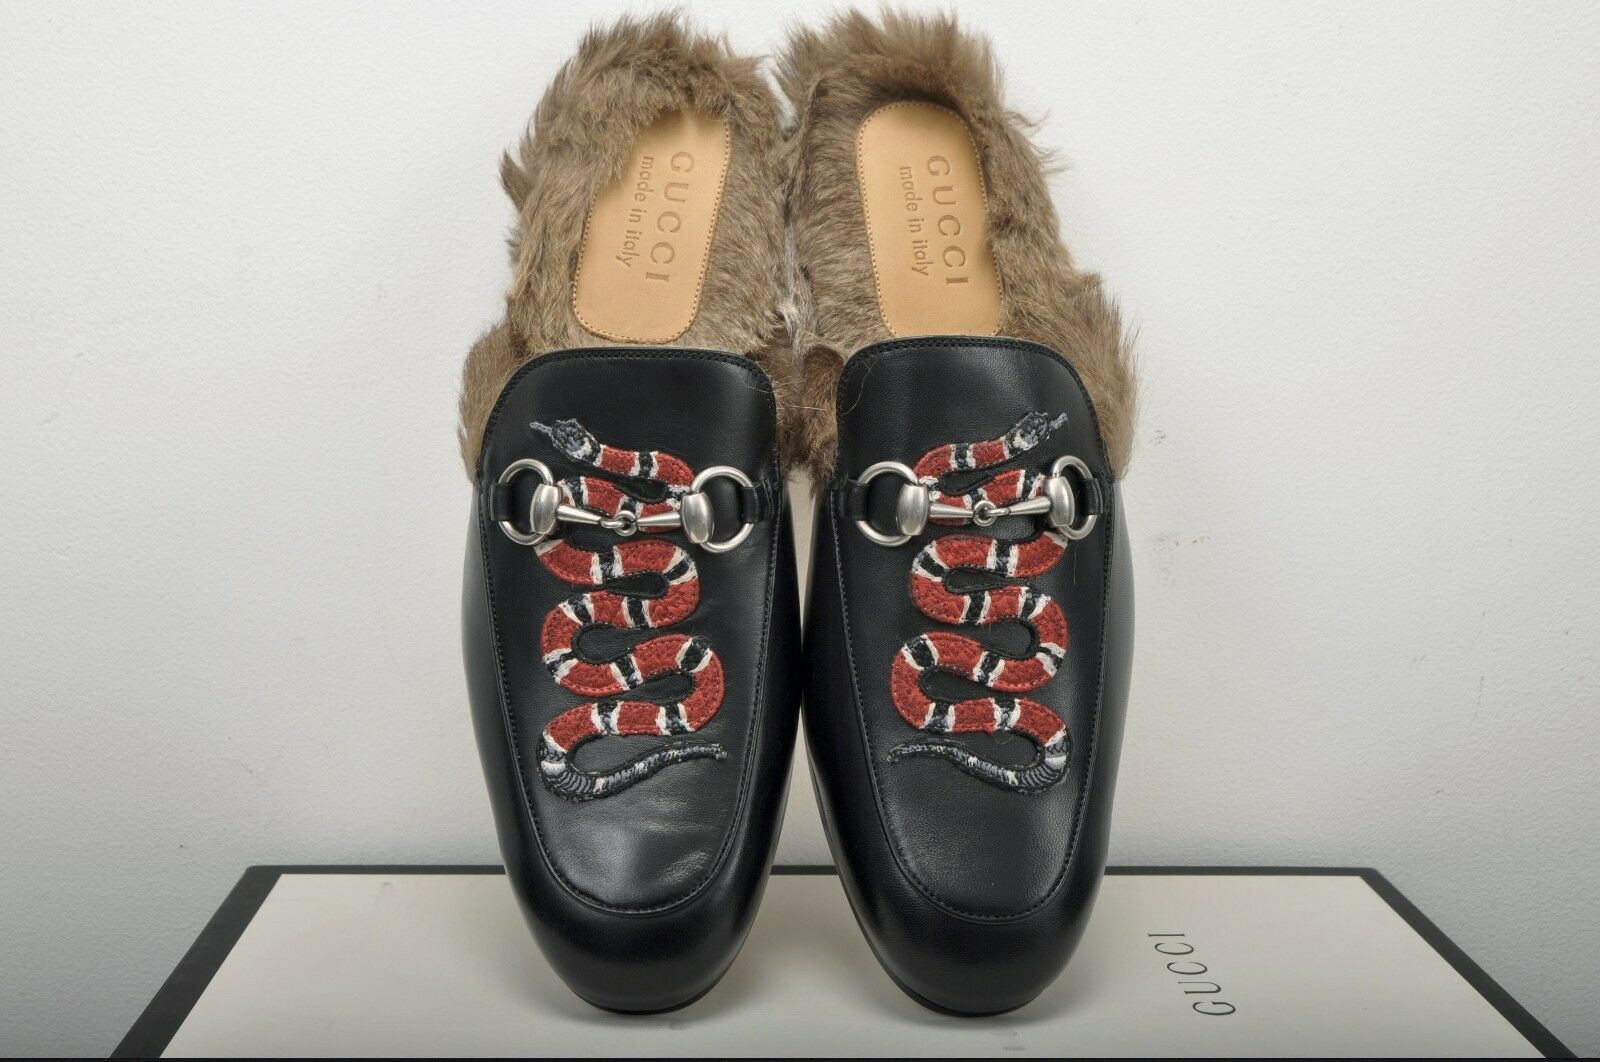 7510da2f758 GUCCI 995  Authentic New Black Fur Lined Leather Princetown Snake ...